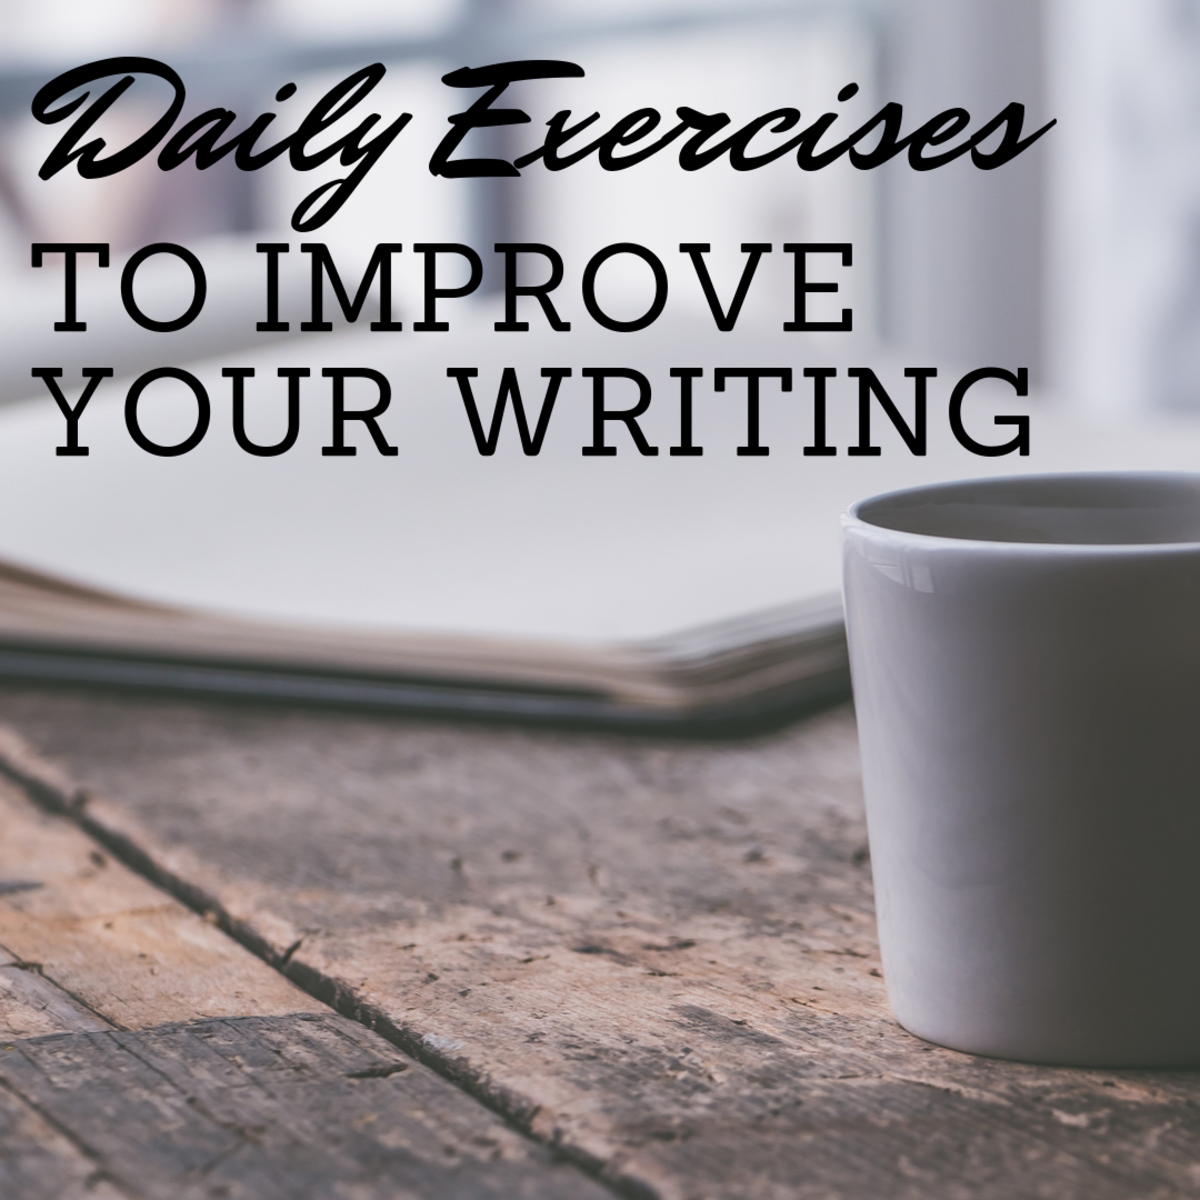 Exercises to Improve Your Writing